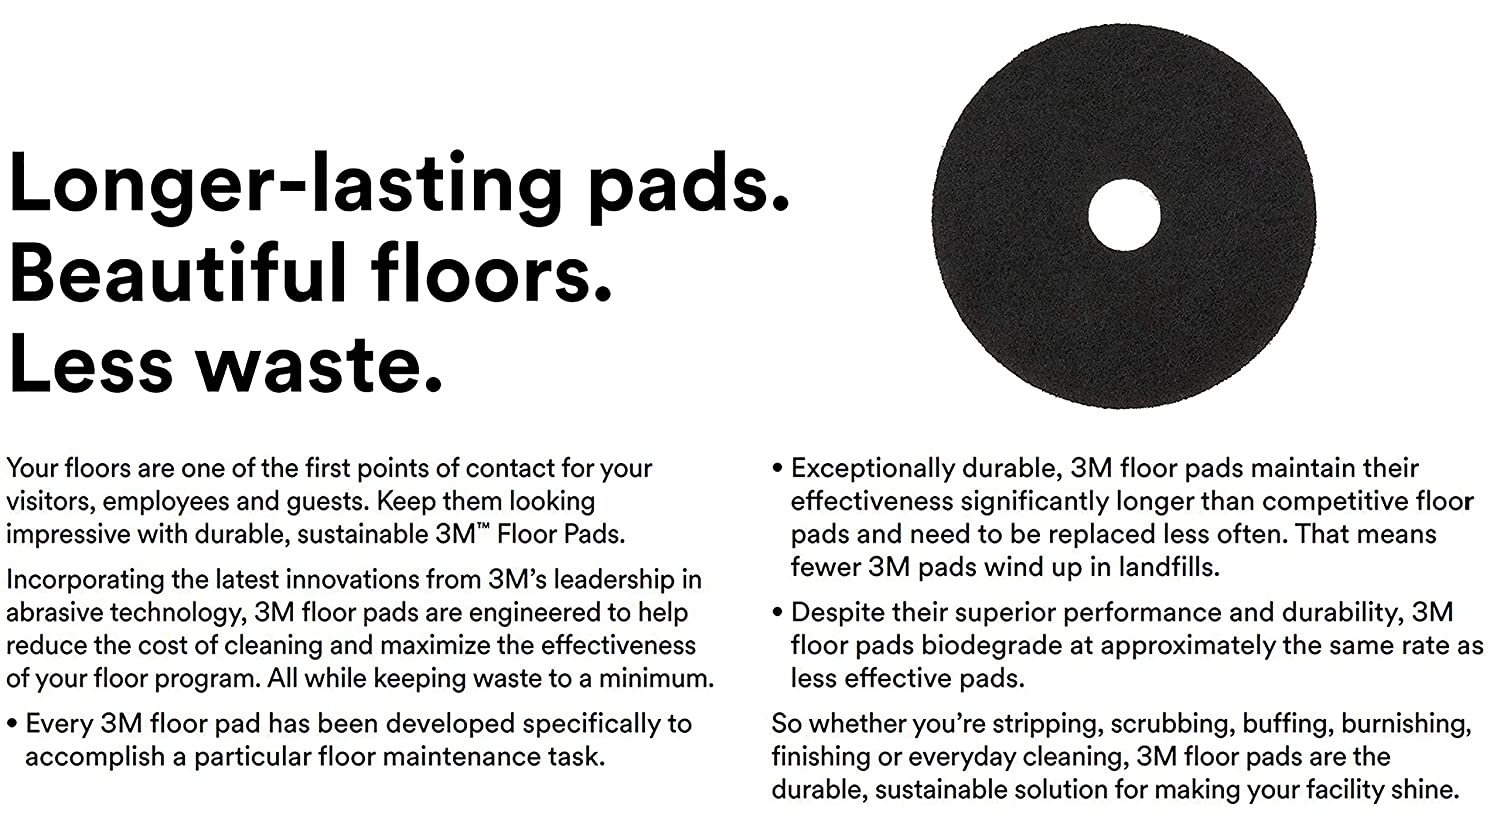 12 INCH BLACK FLOOR PADS FOR CLEANING AND STRIPPING FLOORS.